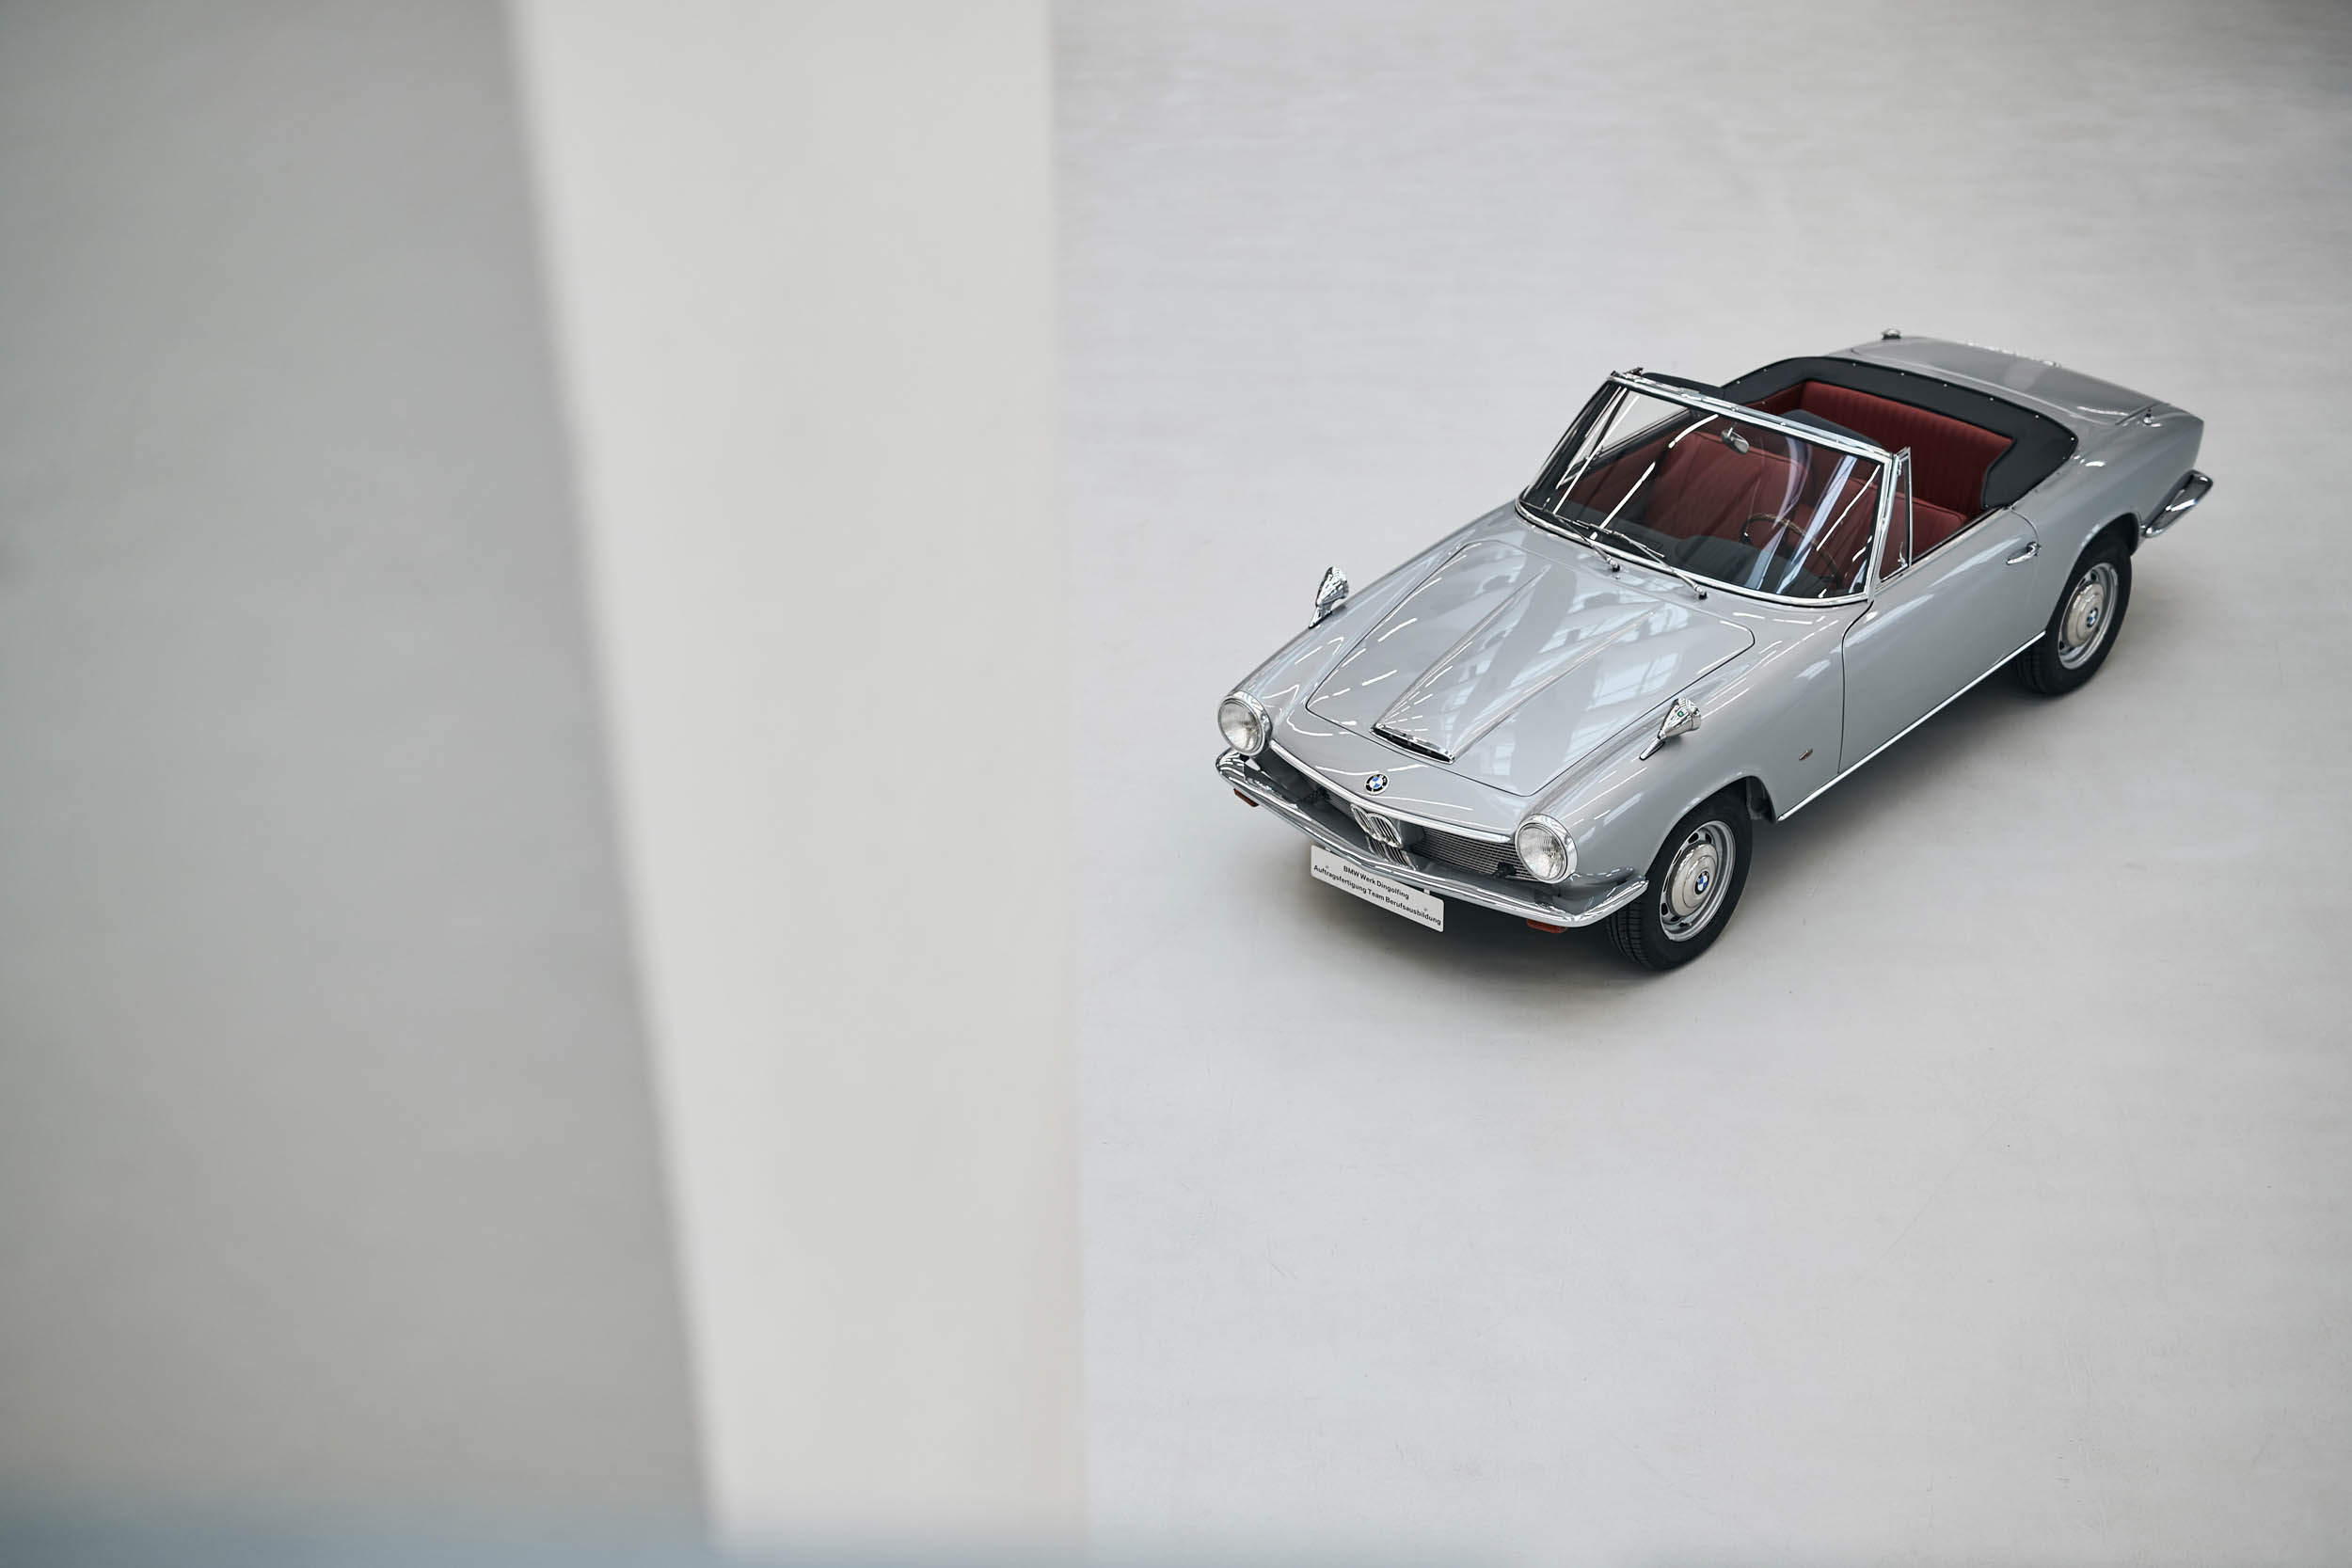 BMW 1600 GT convertible front 3/4 overhead